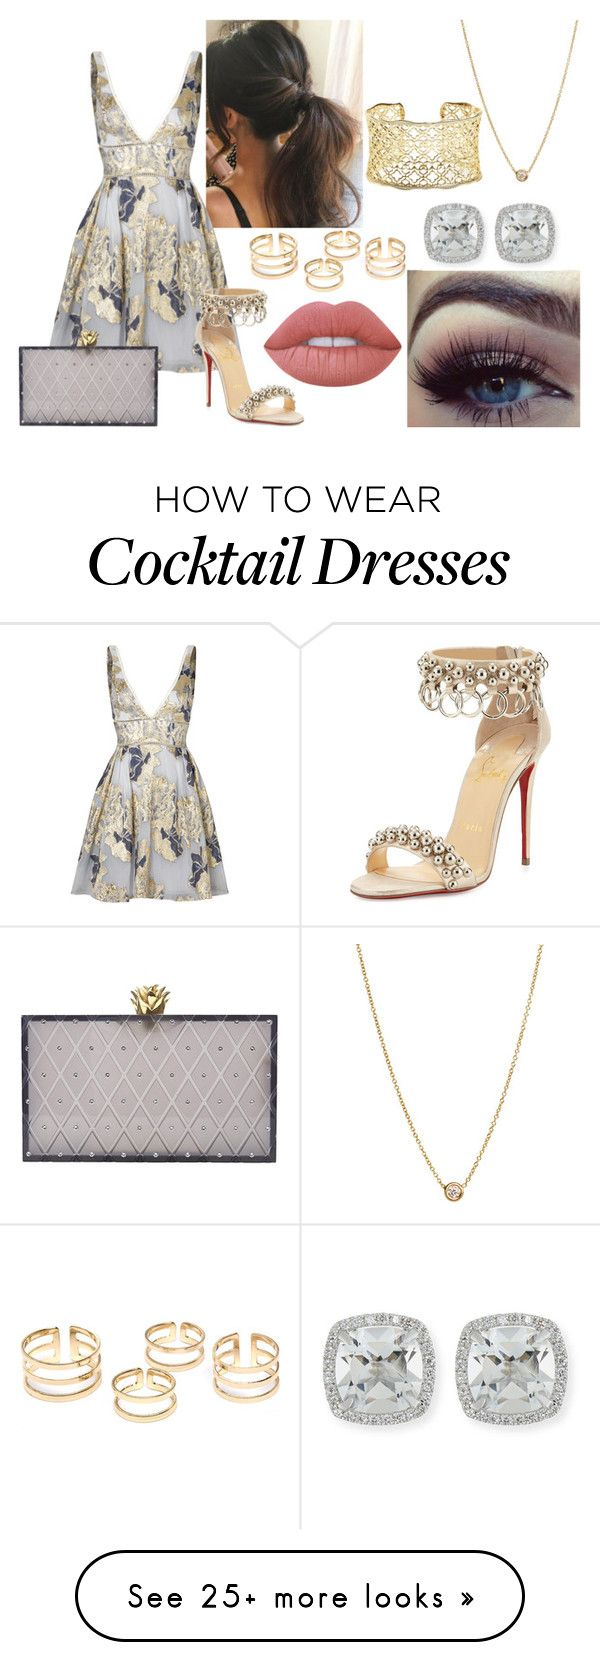 """Untitled #235"" by xoxojay1 on Polyvore featuring Notte by Marchesa, Christian Louboutin, Zoë Chicco, Lime Crime, Kendra Scott, Frederic Sage and Charlotte Olympia"